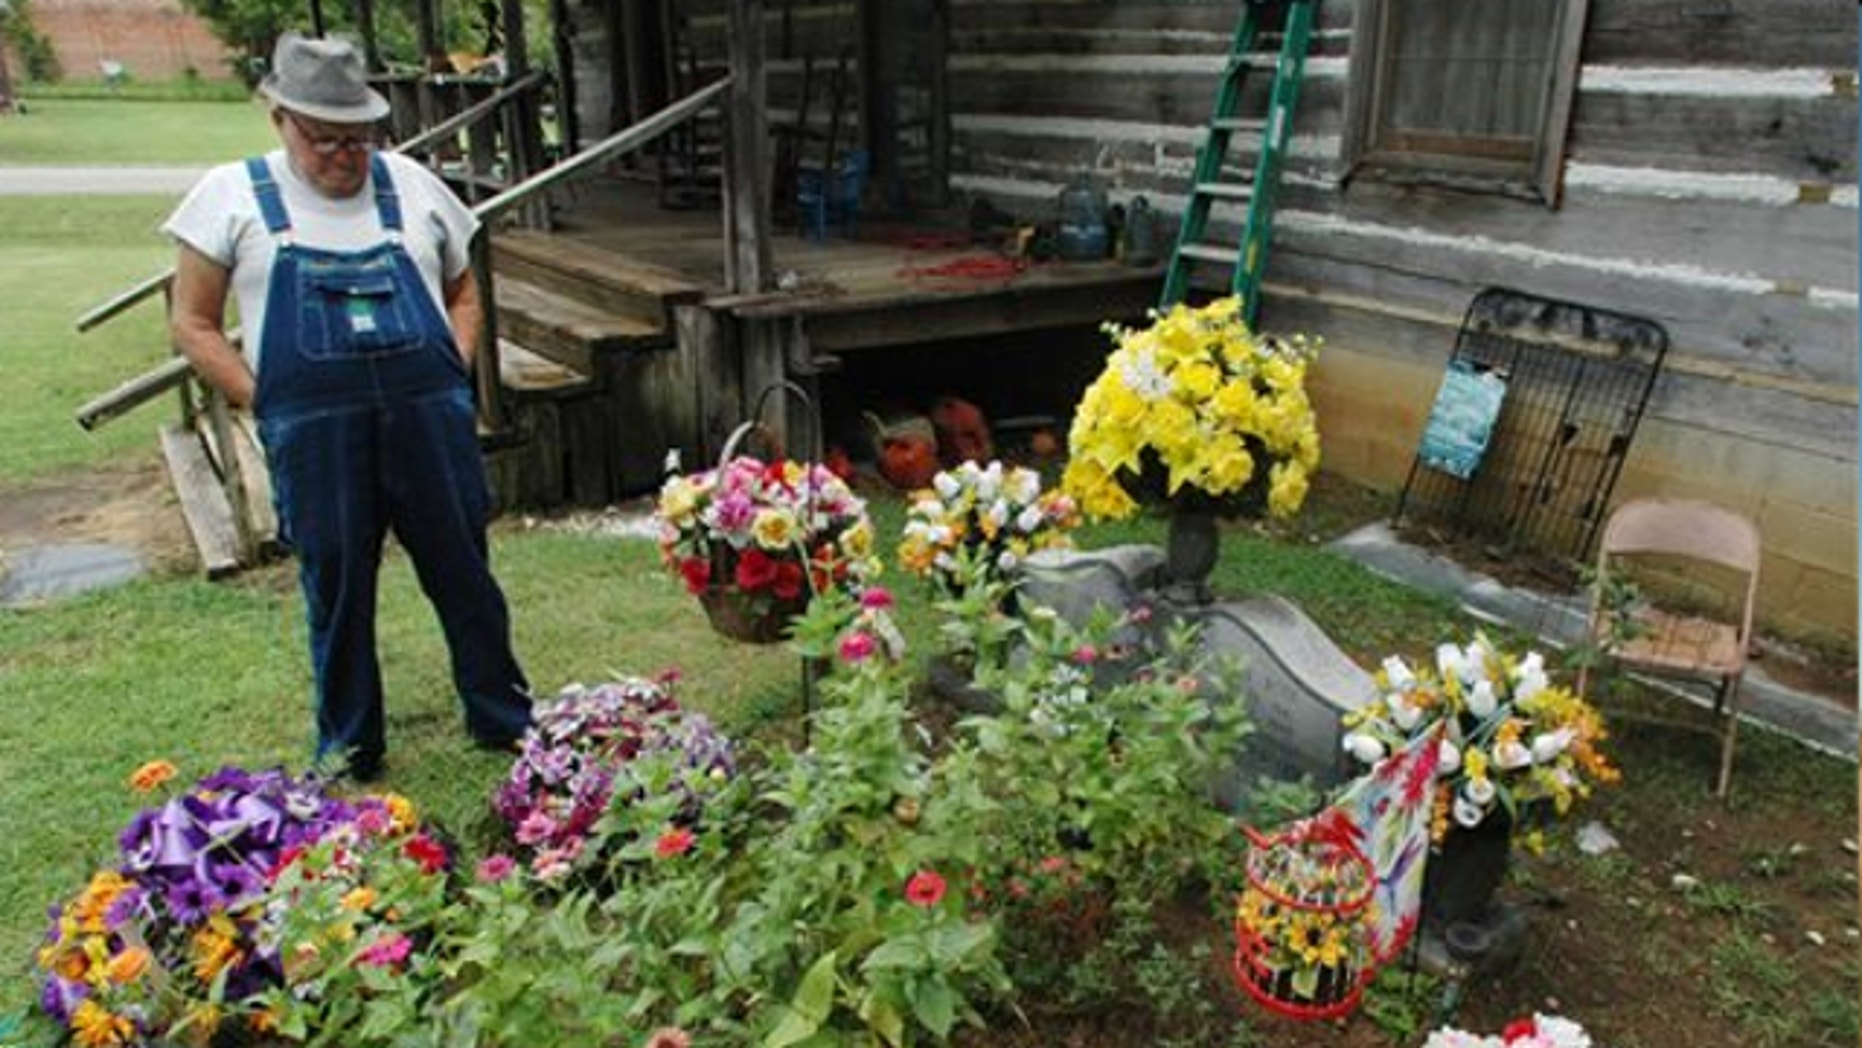 Aug. 10, 2012: James Davis, 73, stands over the grave of his wife, Patsy, in the front yard of the home they shared in Stevenson, Ala.